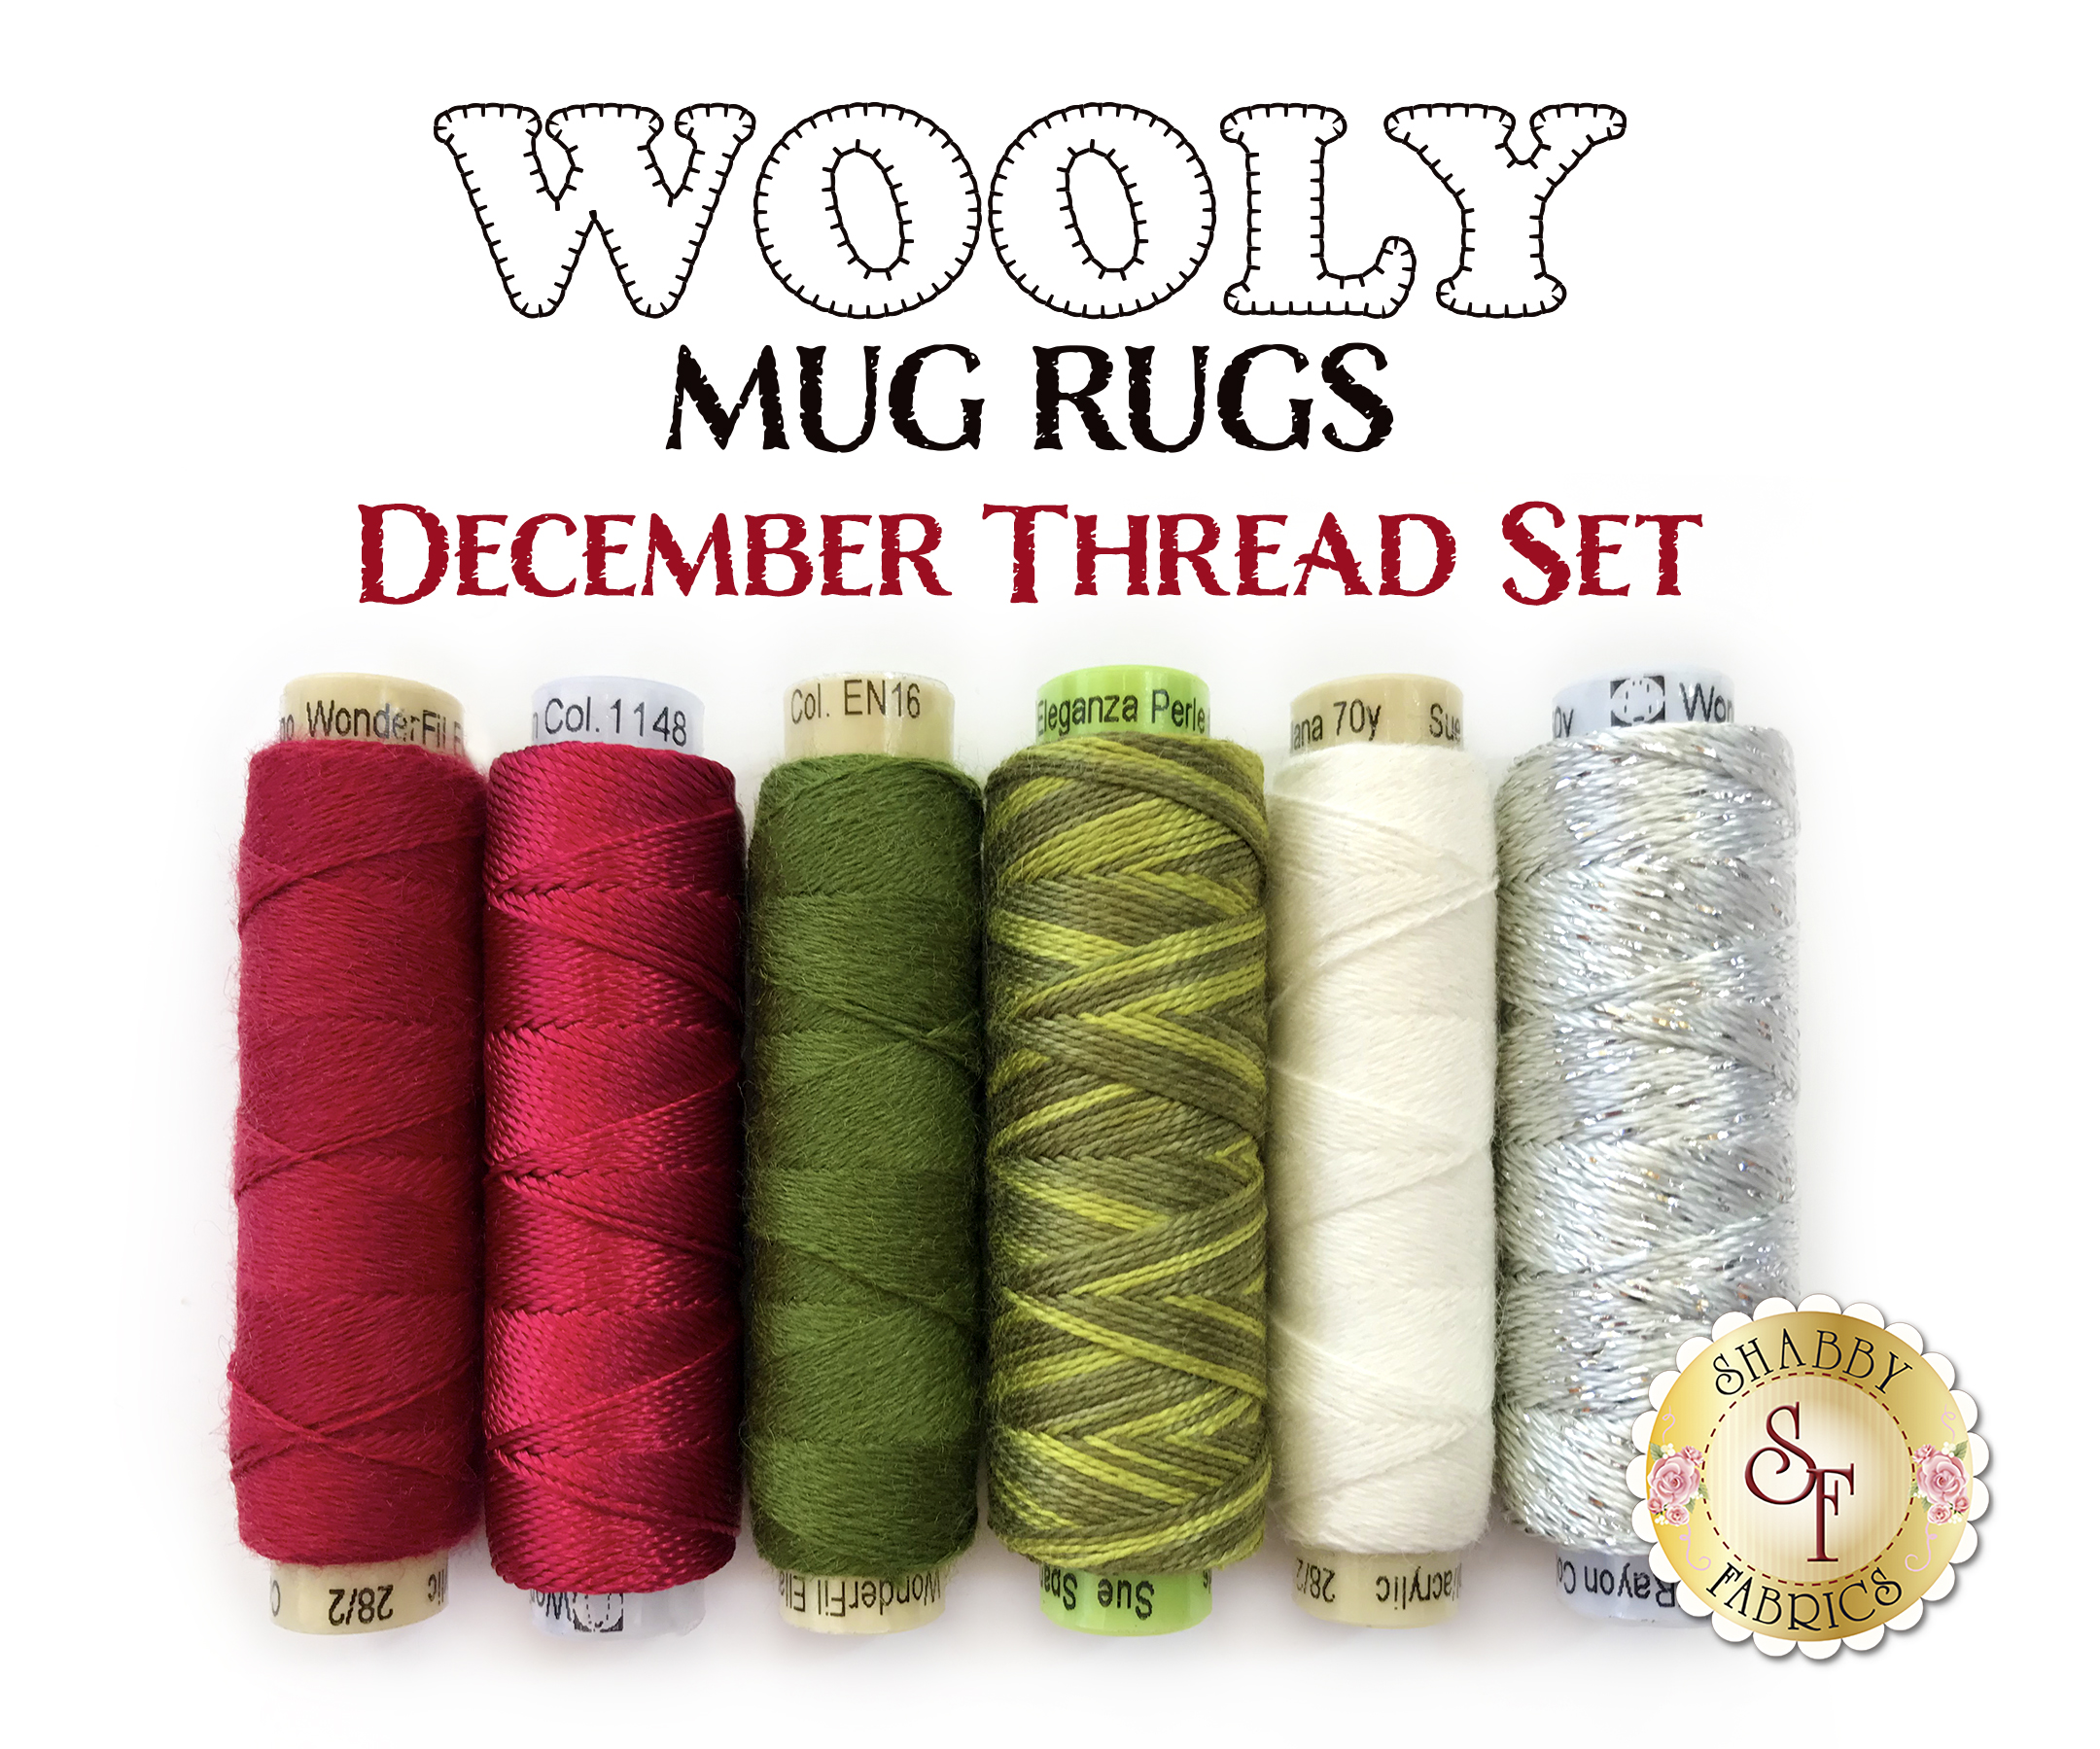 Wooly Mug Rugs December Hand Embroidery Thread Set Lined up on white background